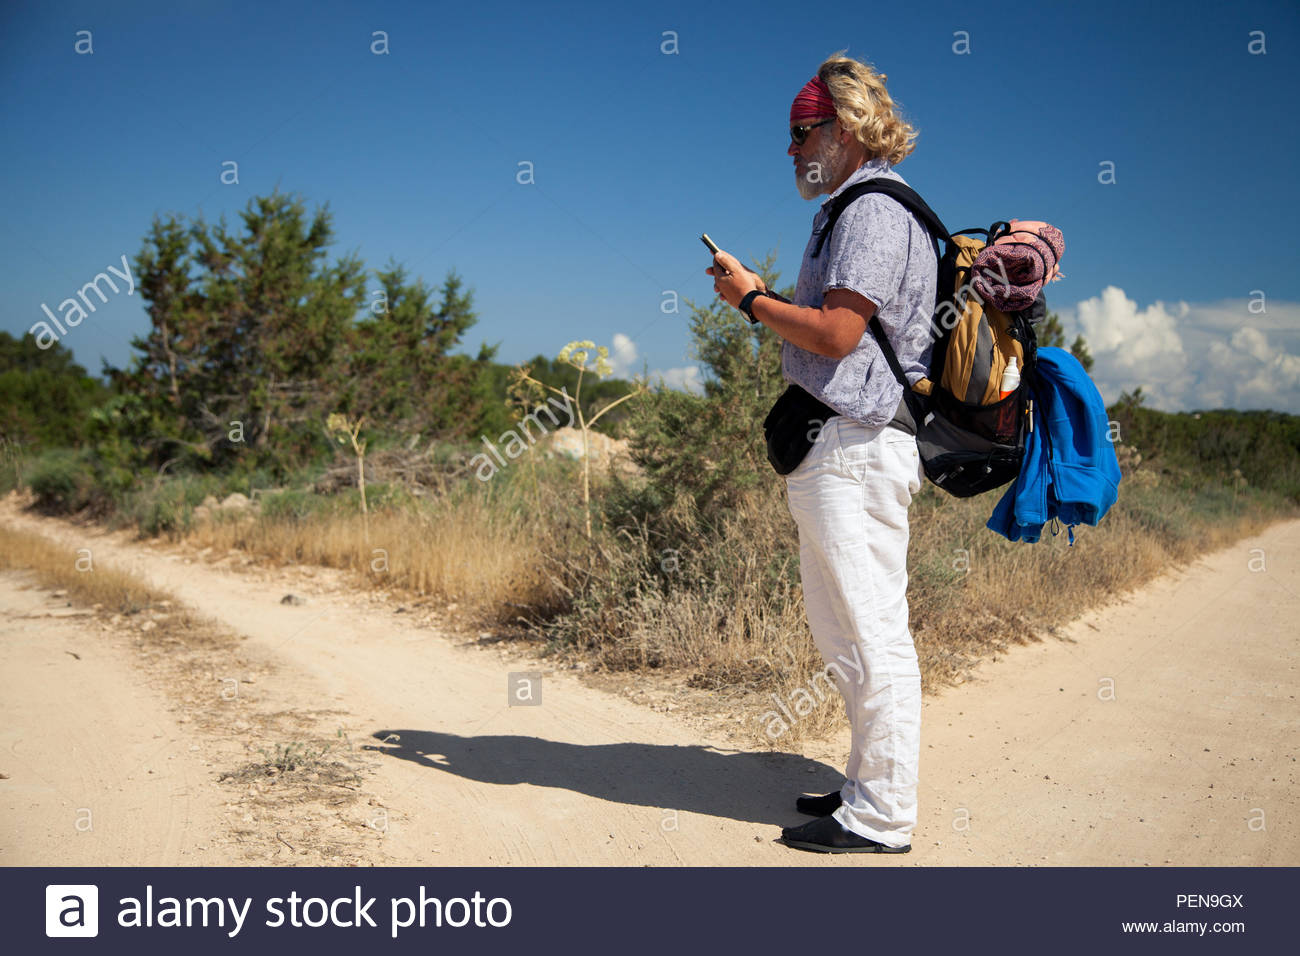 Traveler consults his mobile phone at a crossroads in a rural landscape - Stock Image